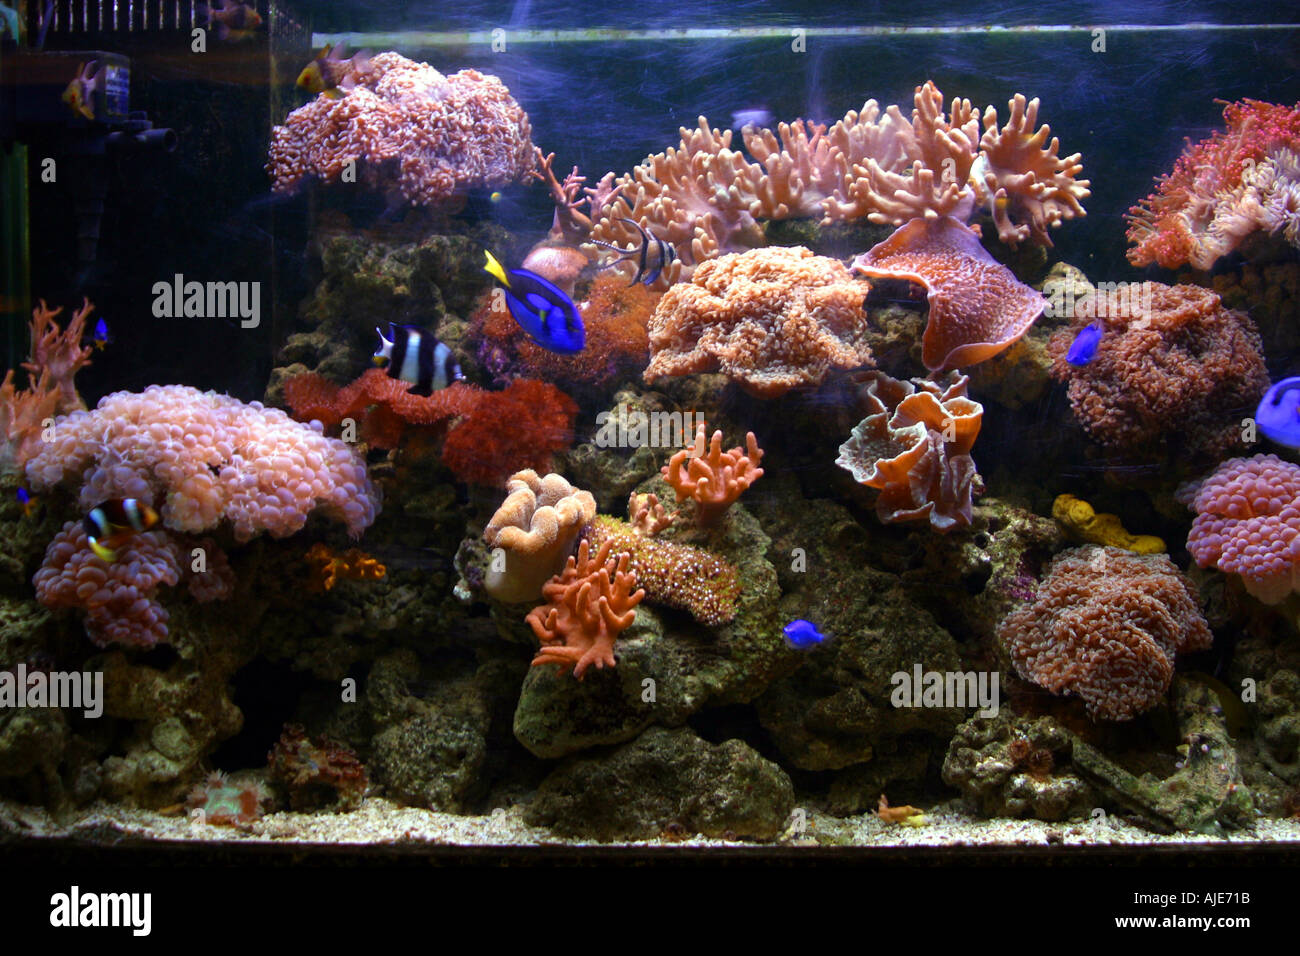 stock photo tropical fish in a fish tank bangkok thailand